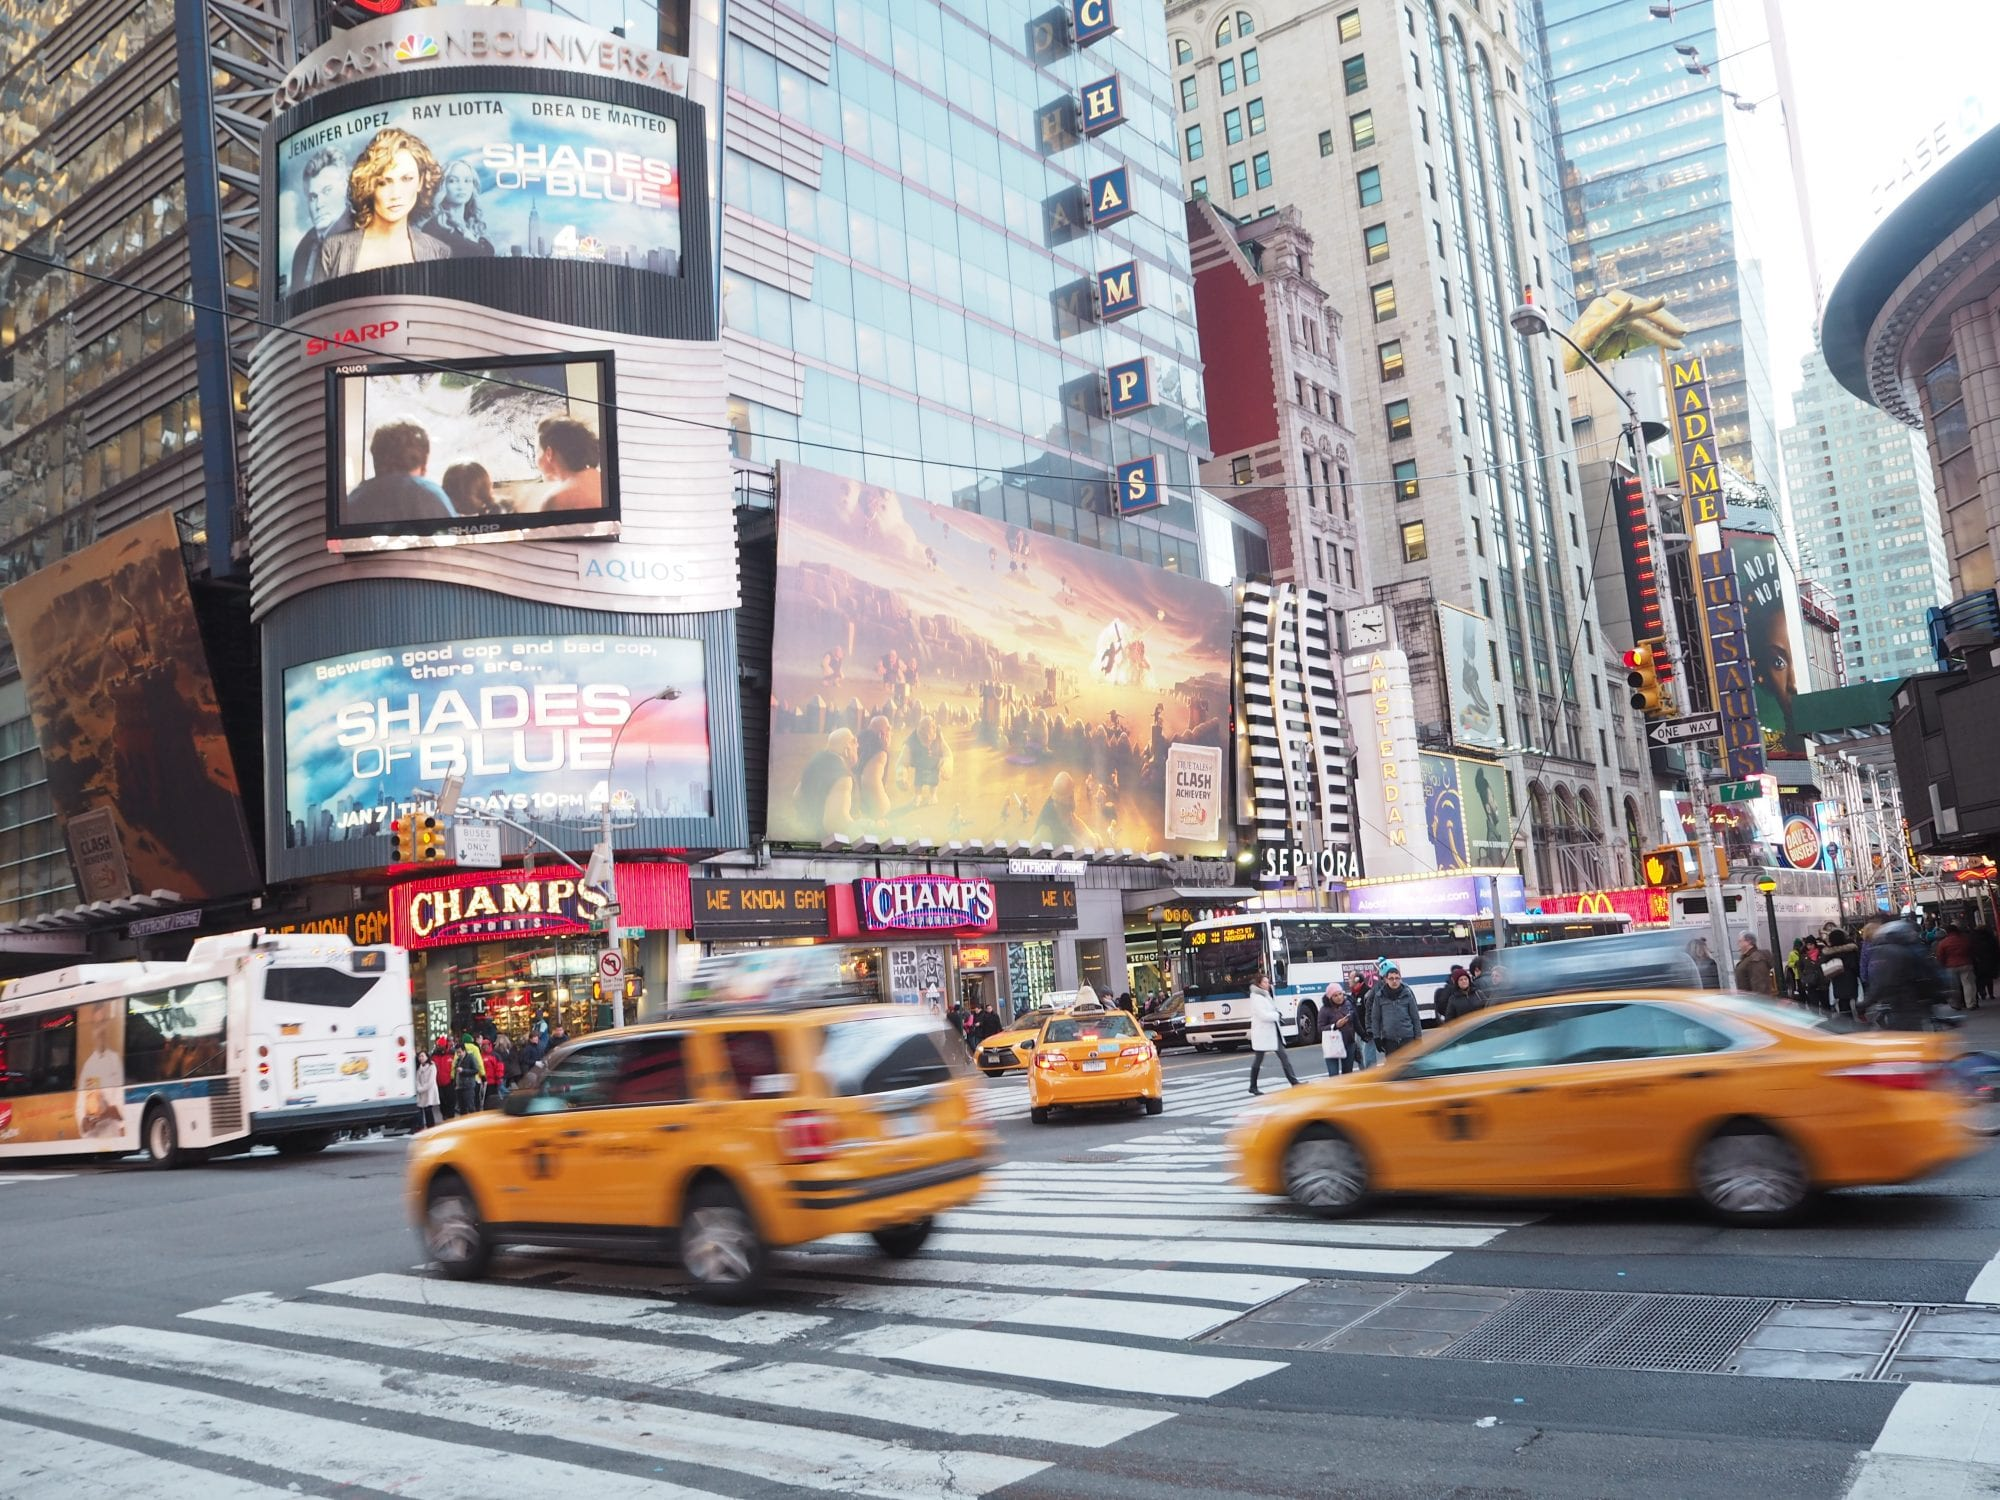 Top 10 things to do in new york on a budget the for Times square new york things to do